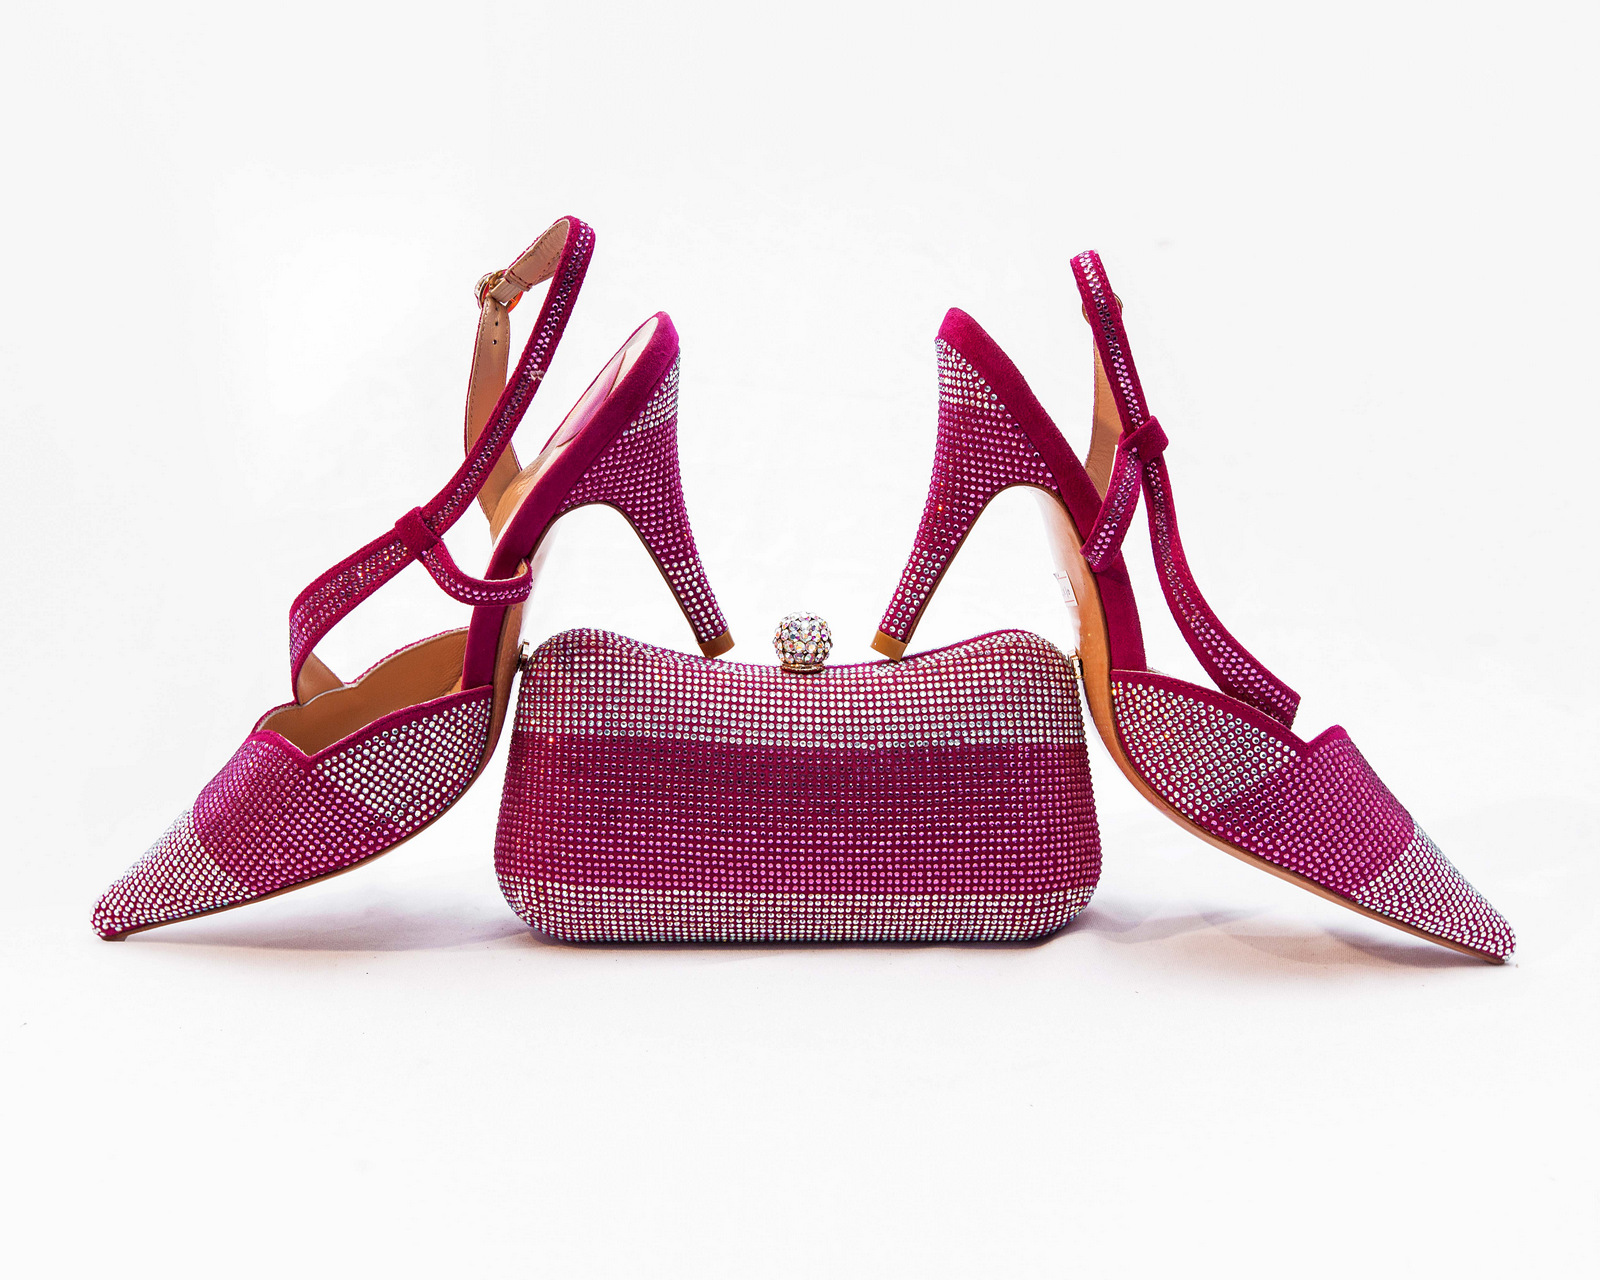 KO Bling Sandals And Purse